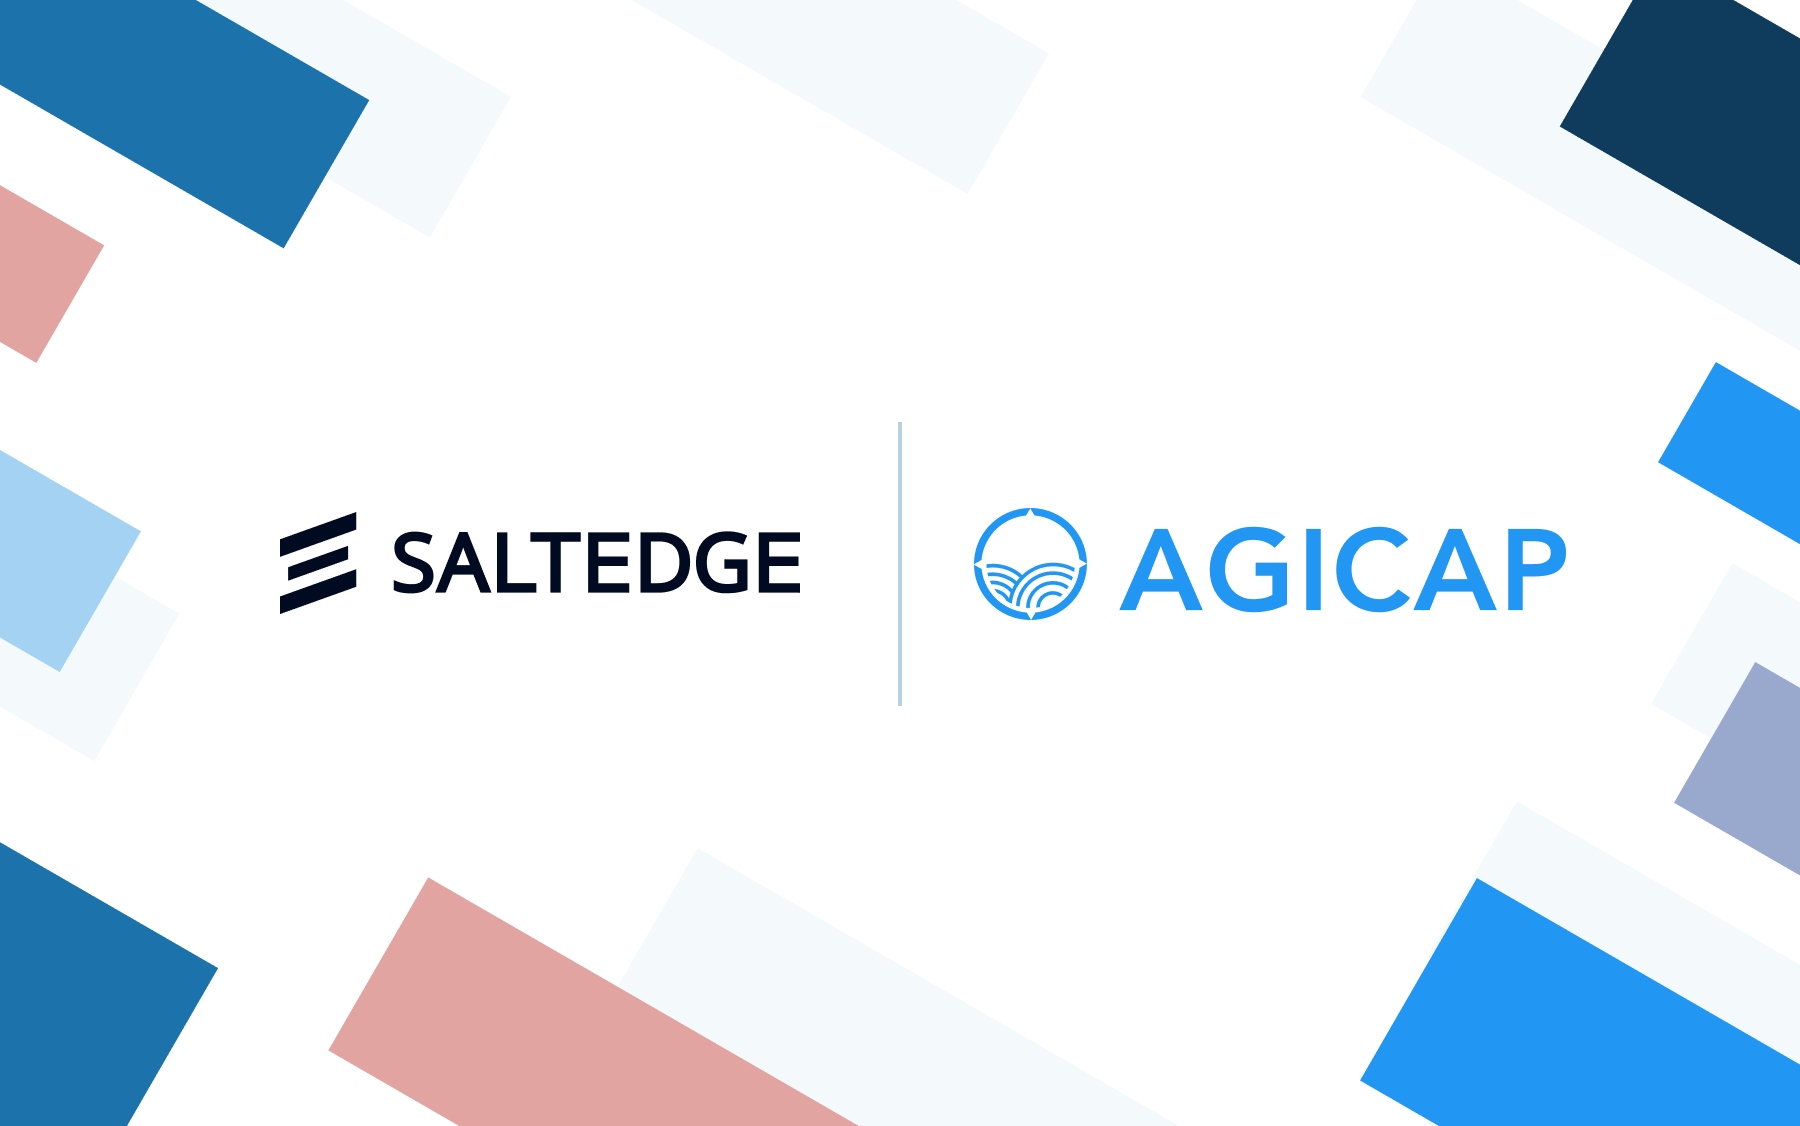 Agicap Selects Salt Edge to Digitalise Cash Flow Management and Forecasting for SMEs